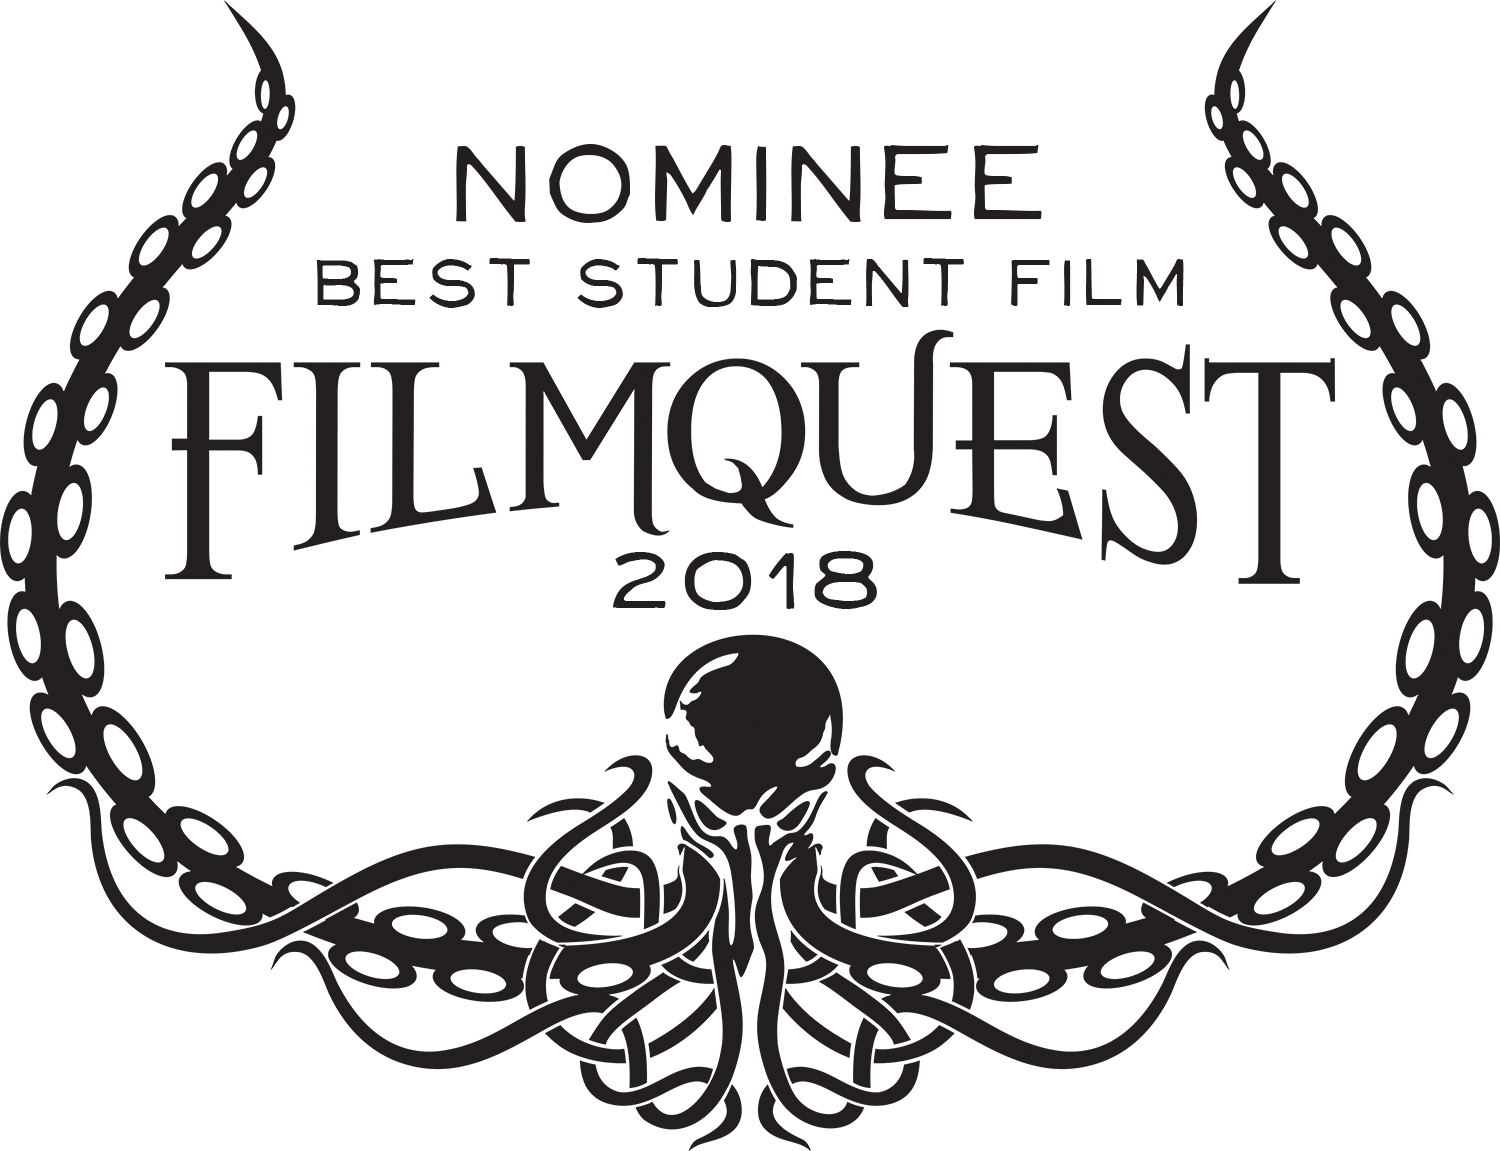 FilmQuest_Nominee_Student.png